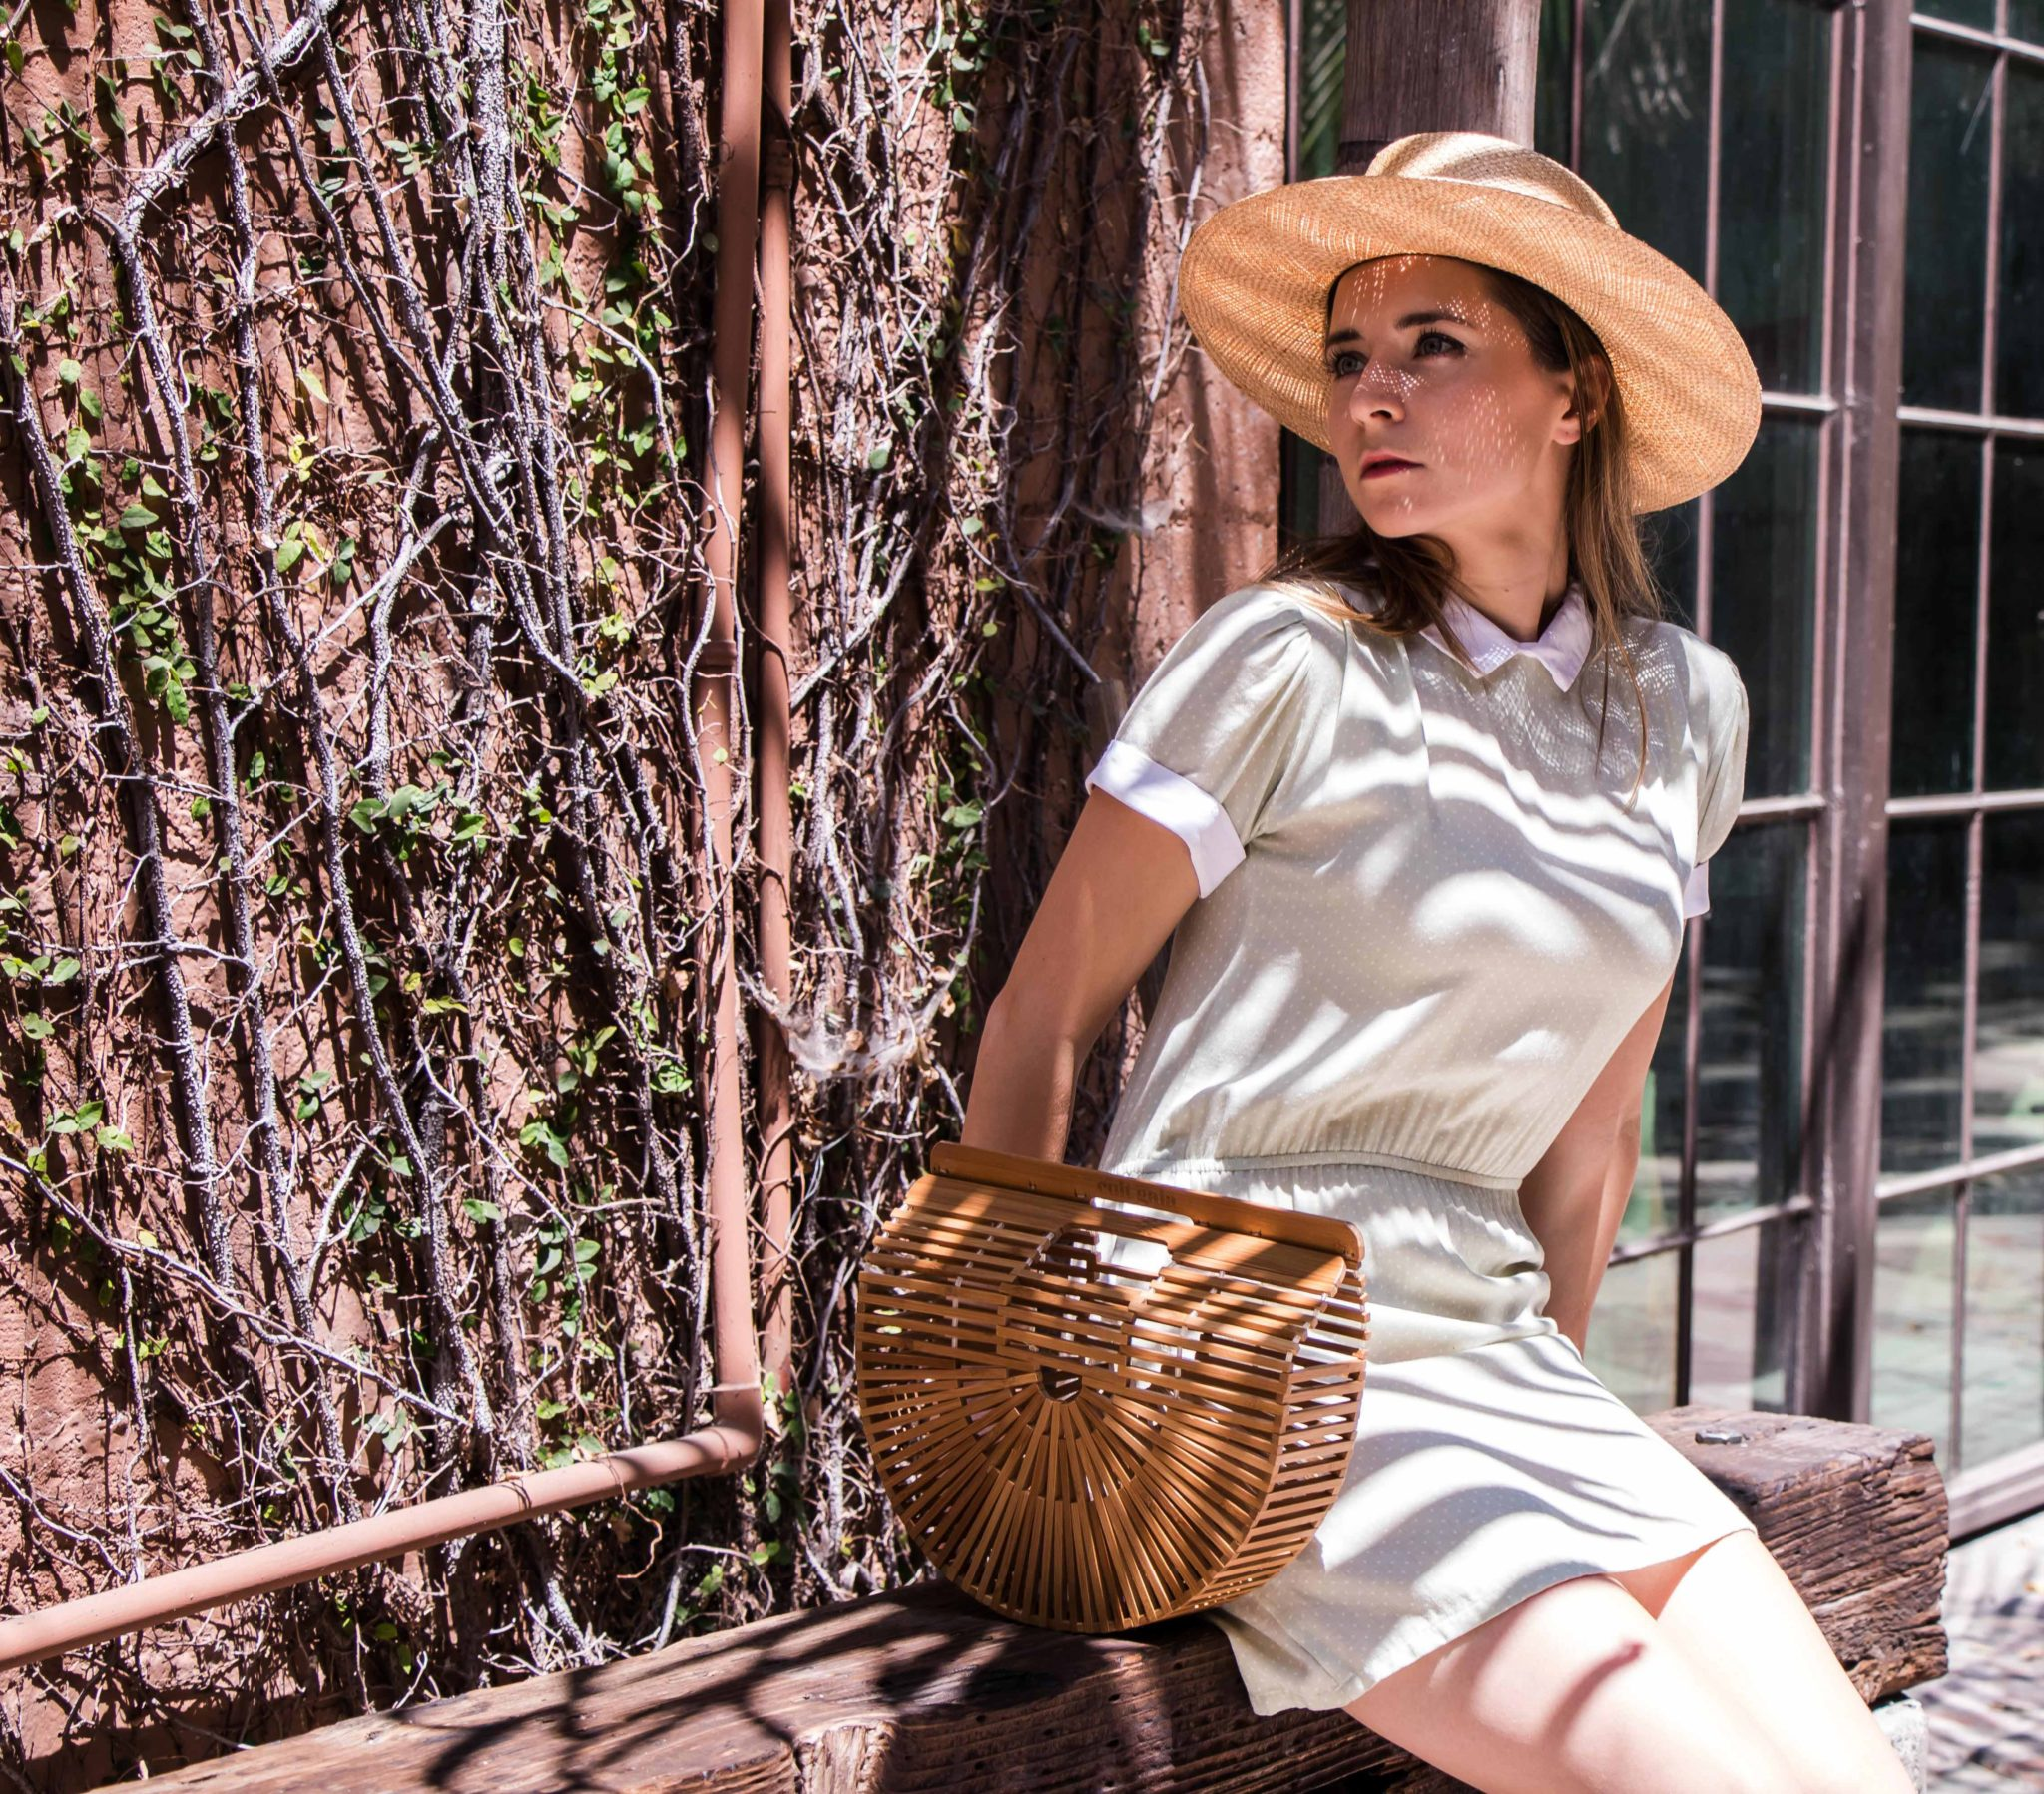 Cult Gaia Janessa Leone Christy Dawn - Best of summer bags: vintage inspiration. Best round rattan bag, straw bag, cult gaia bamboo bag, Jane Birkin basket bag, market bag, woven bag to upgrade your summer outfits.